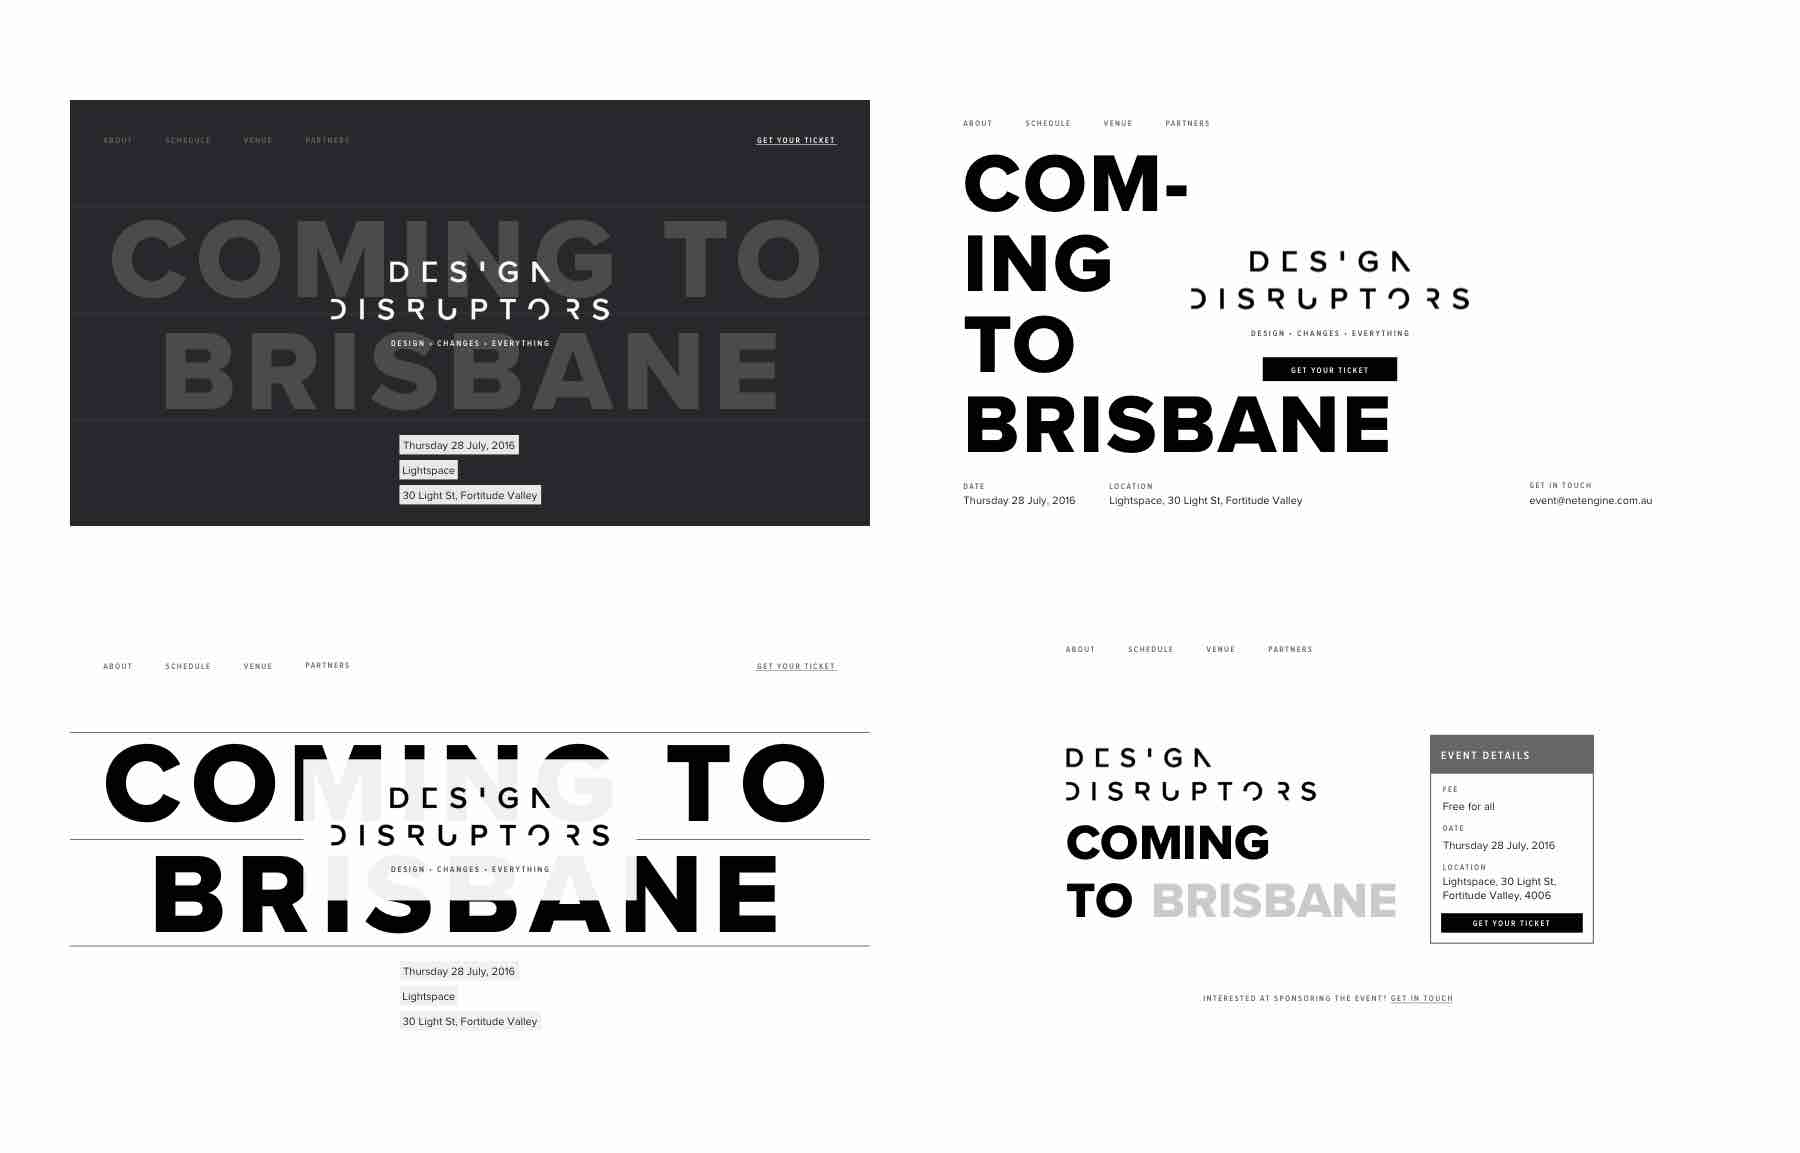 designdisruptors.com.au Website Draft